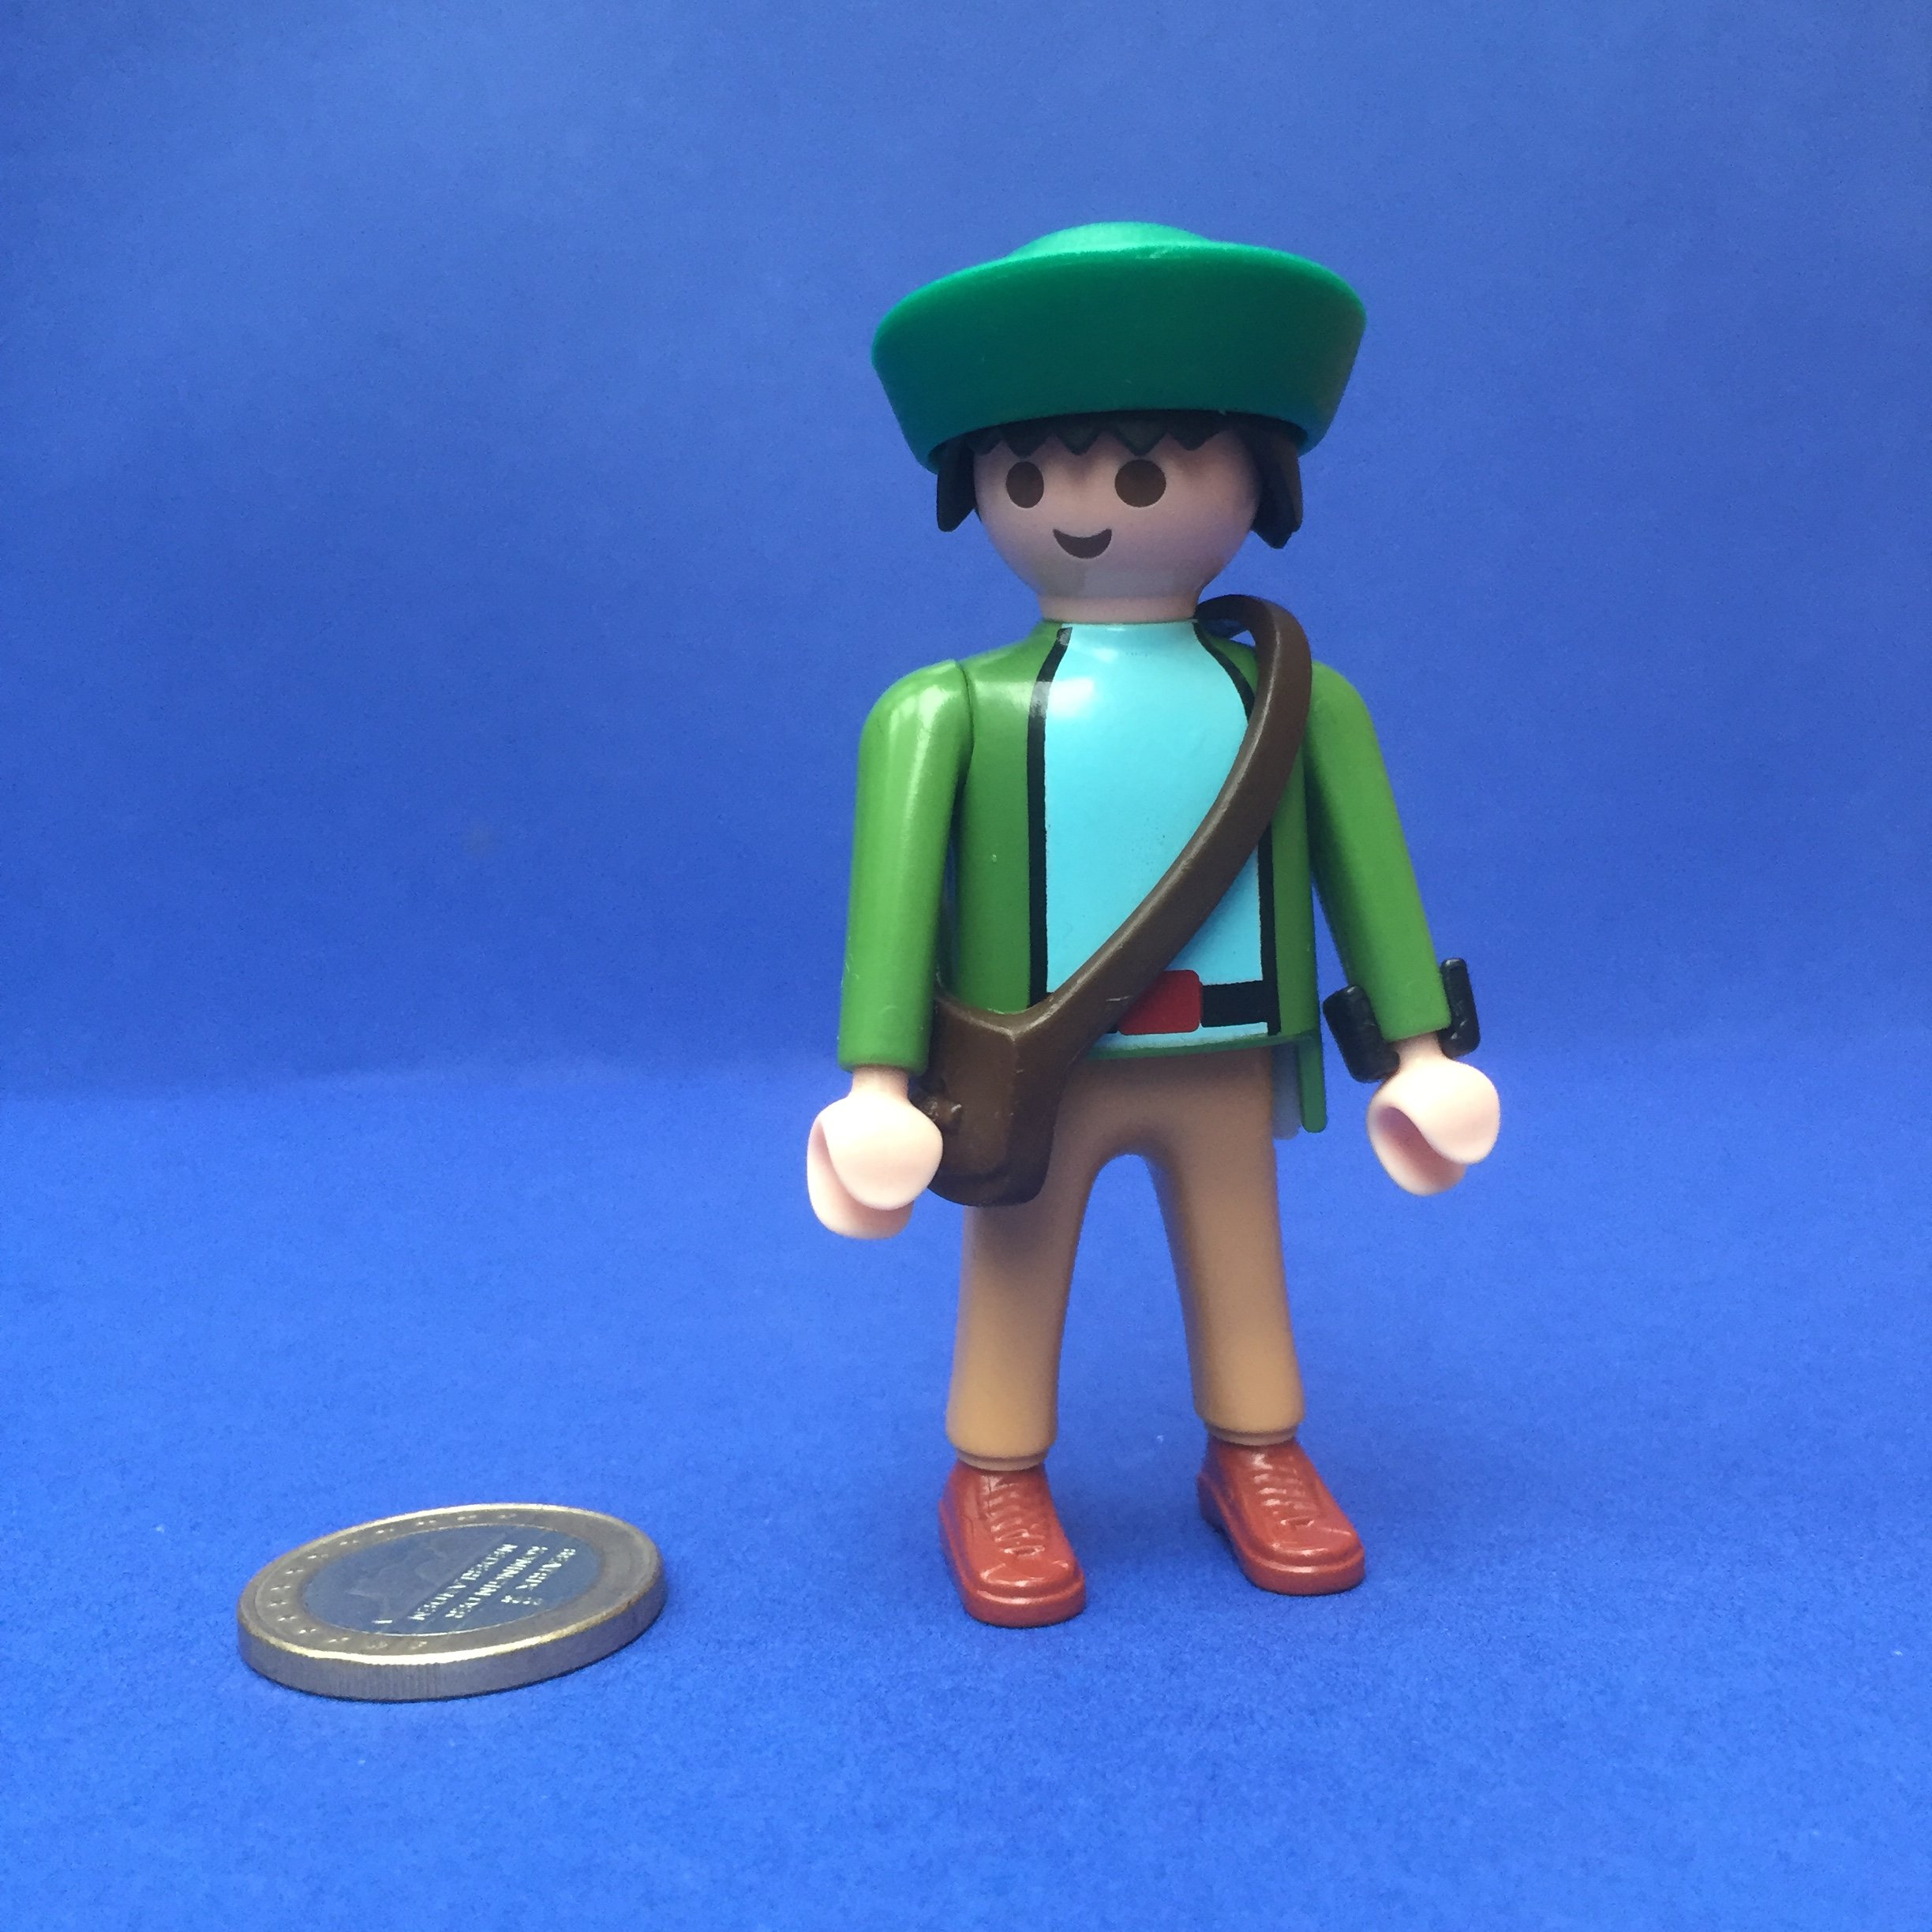 Playmobil-man-pet